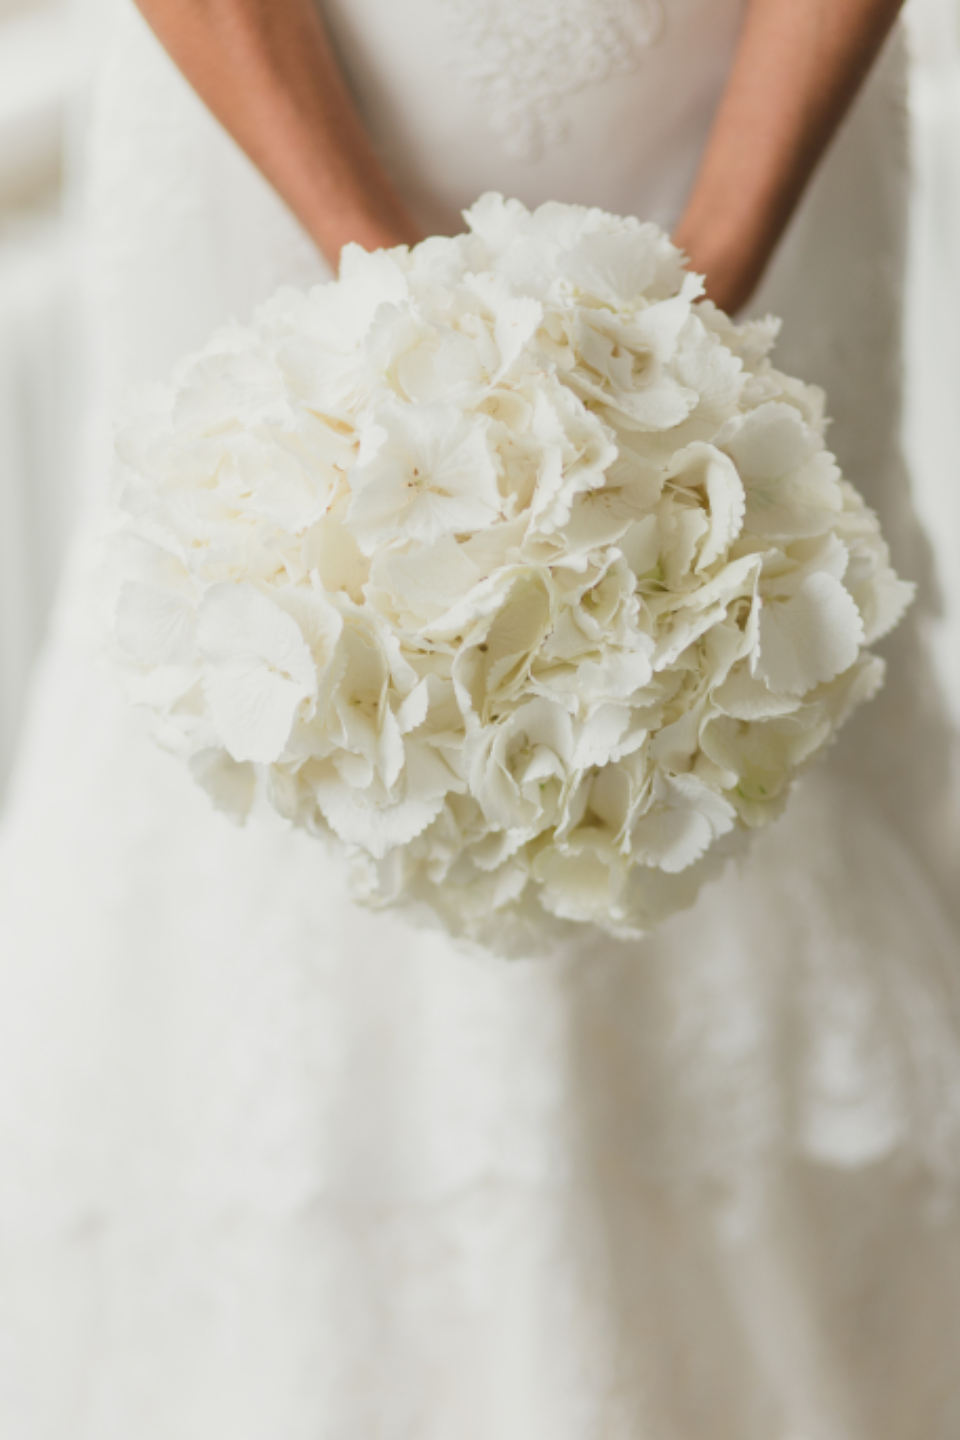 wedding bouquet flowers bride white romantic love bouquet woman female people celebration